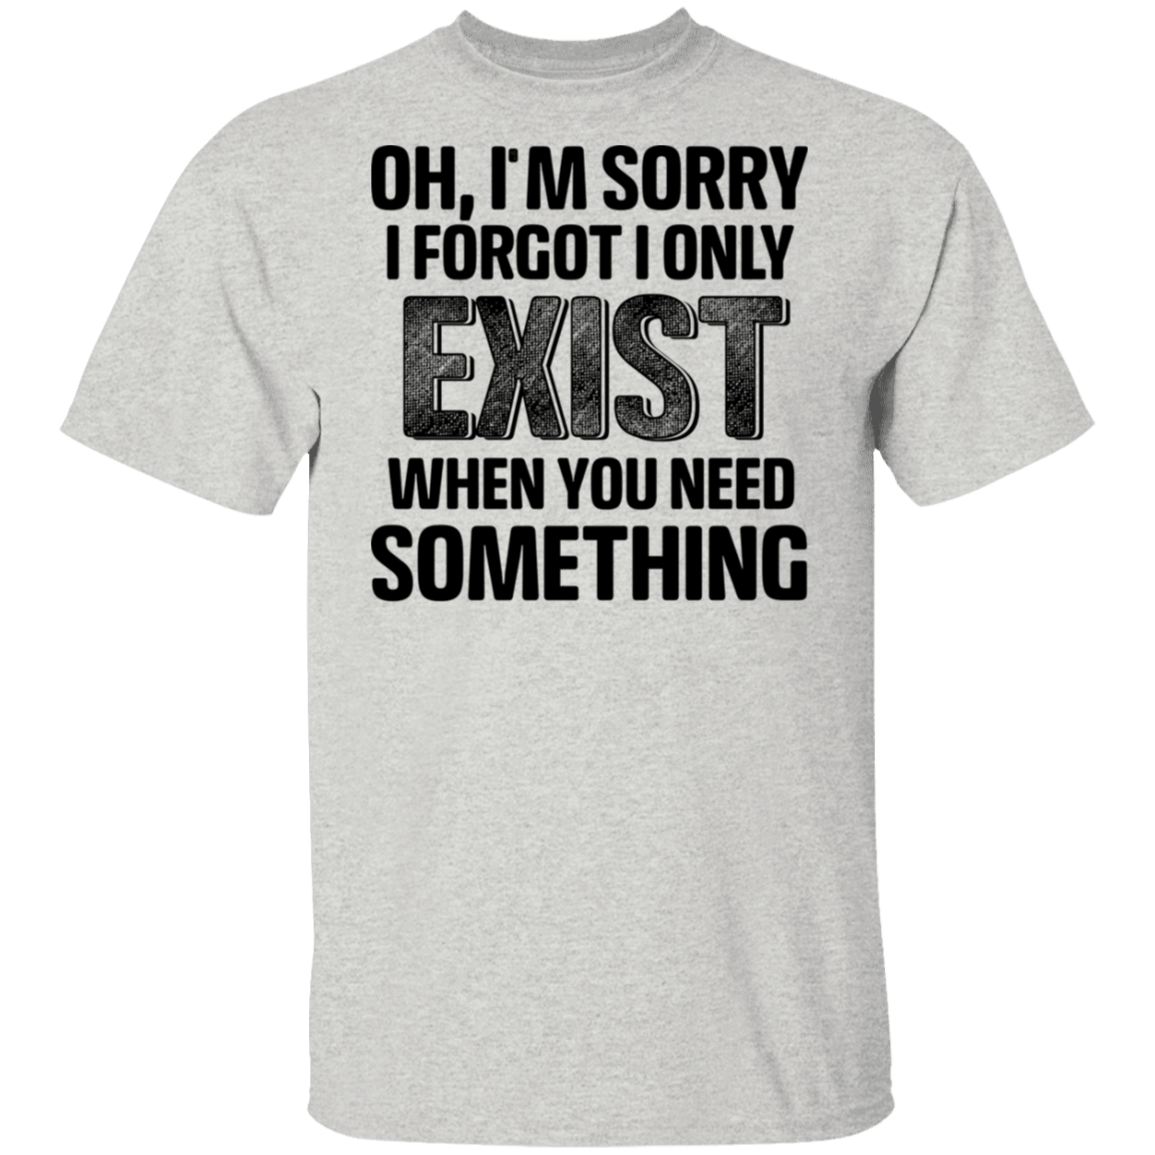 Oh I'm Sorry I Forgot I Only Exist When You Need Something T-Shirts, Hoodies, Tank 1049-9952-80344249-48184 - Tee Ript